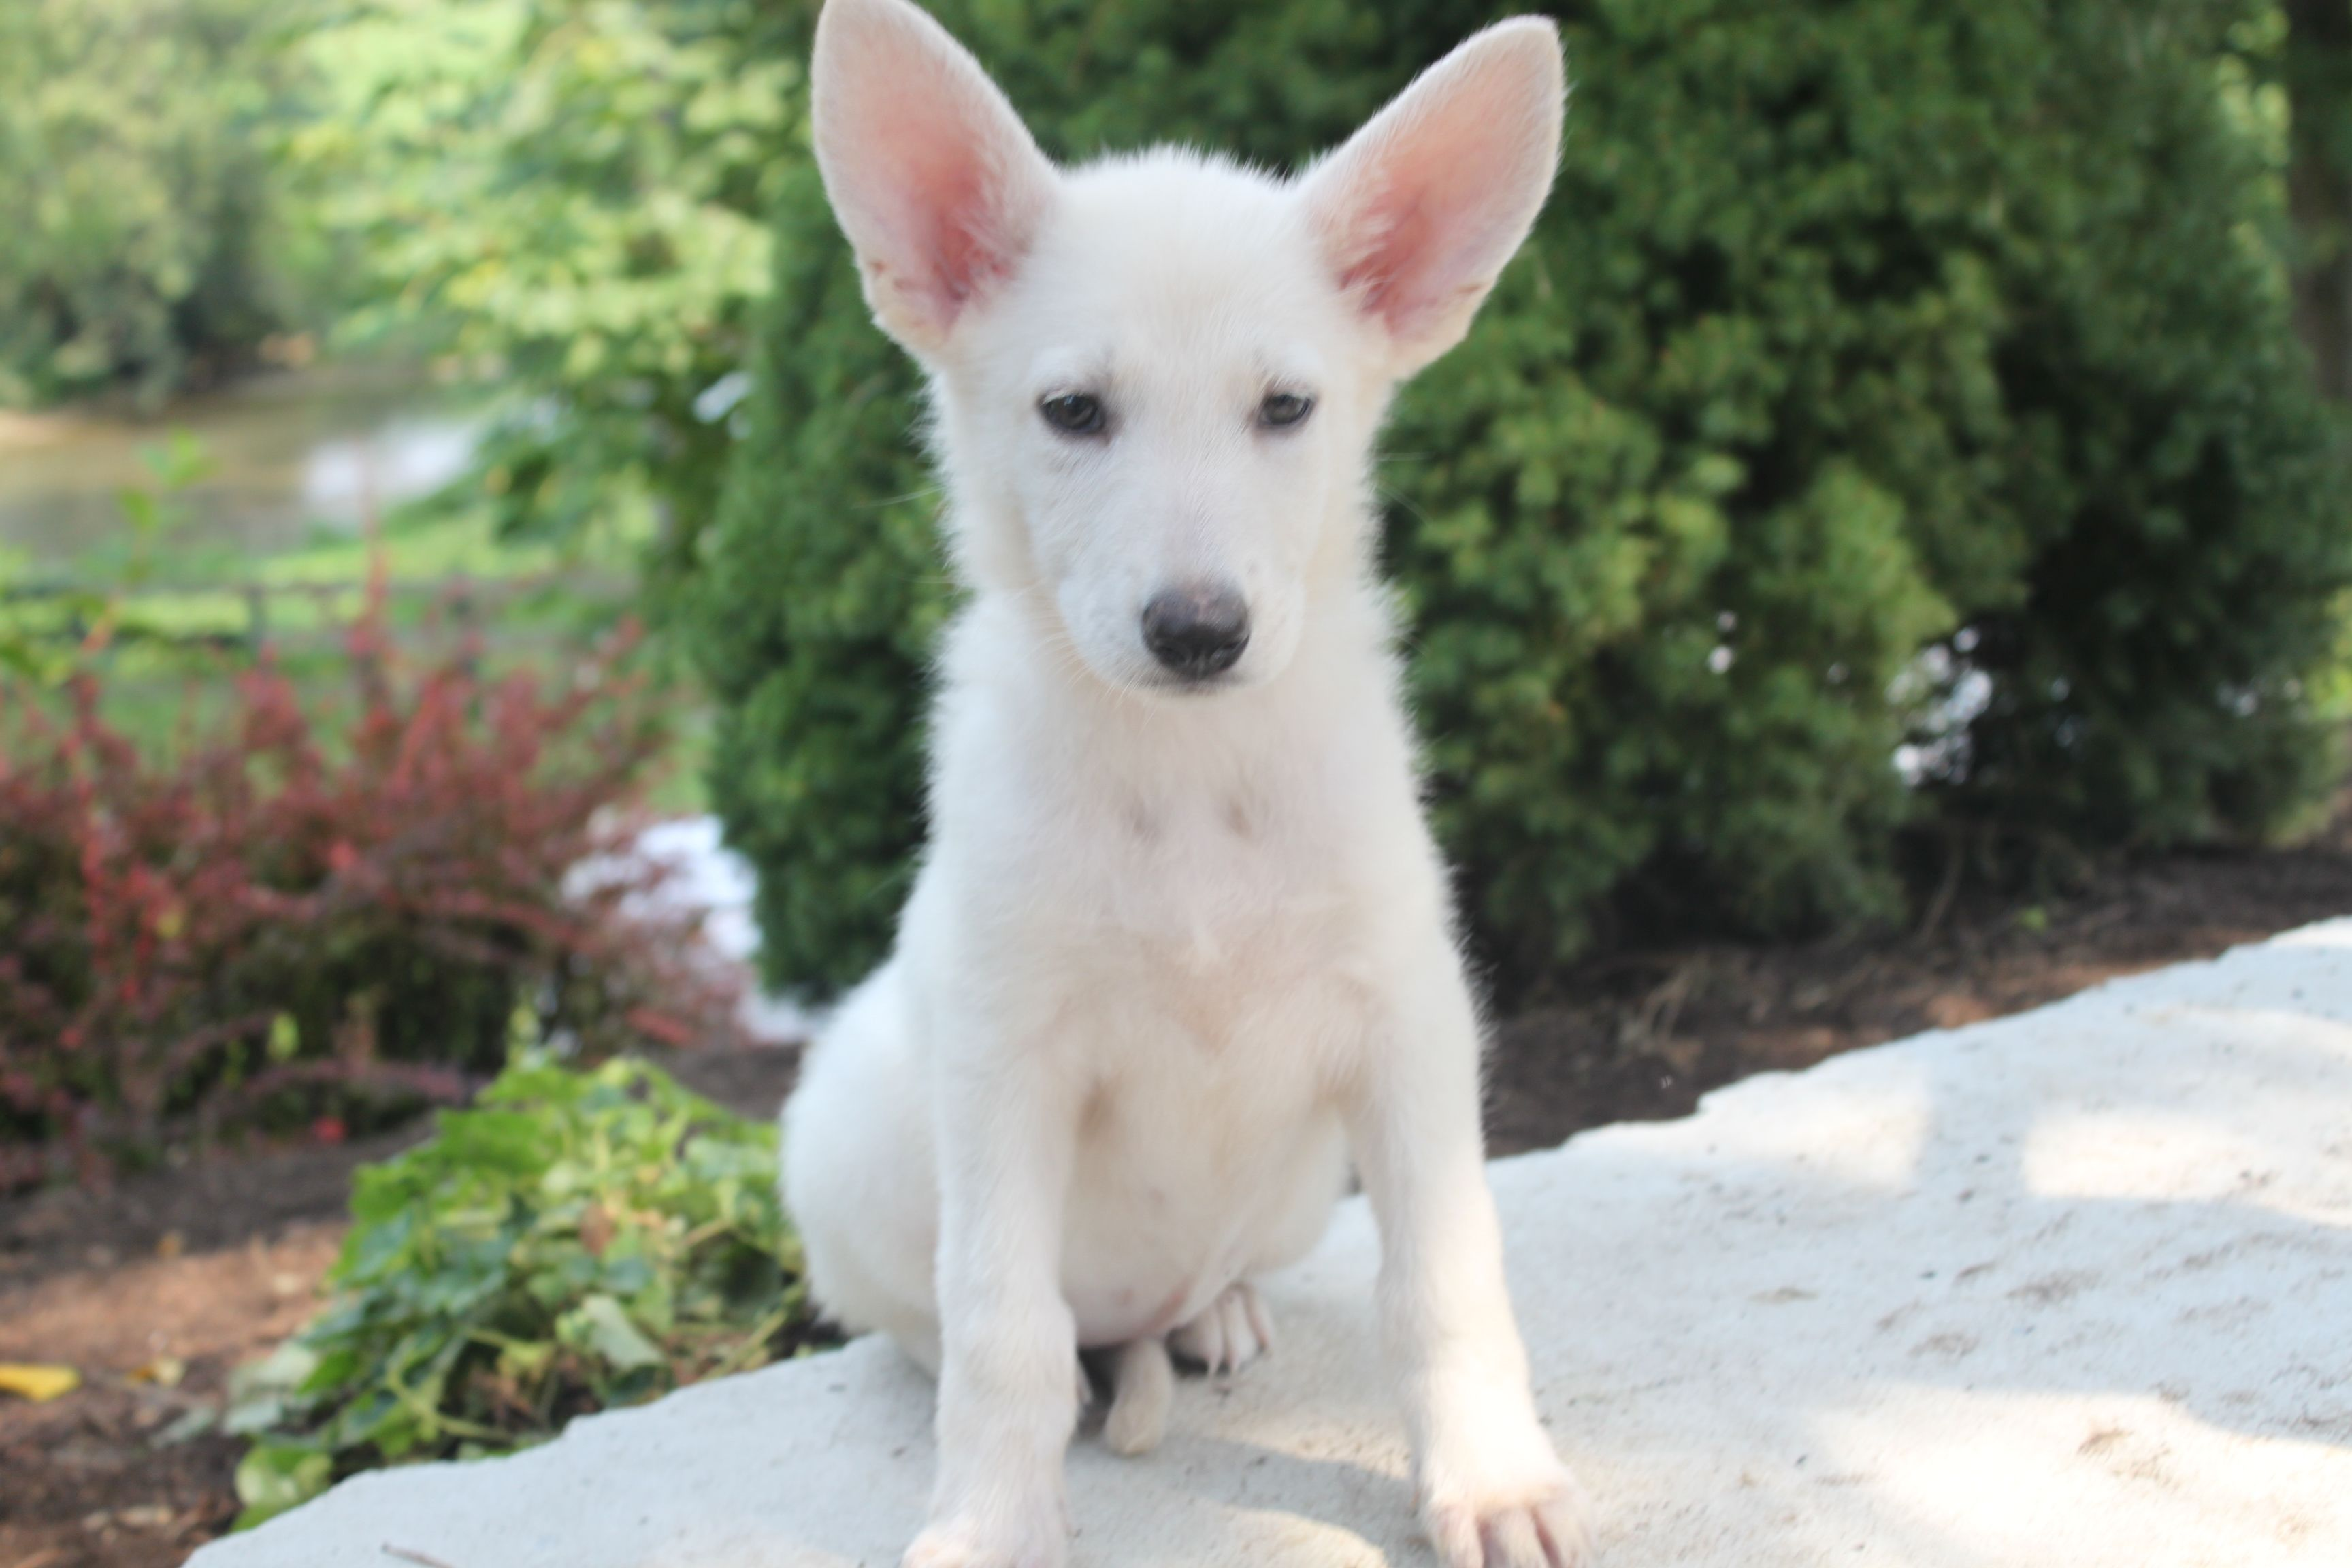 Here is a pure white german shepherd puppy for sale at